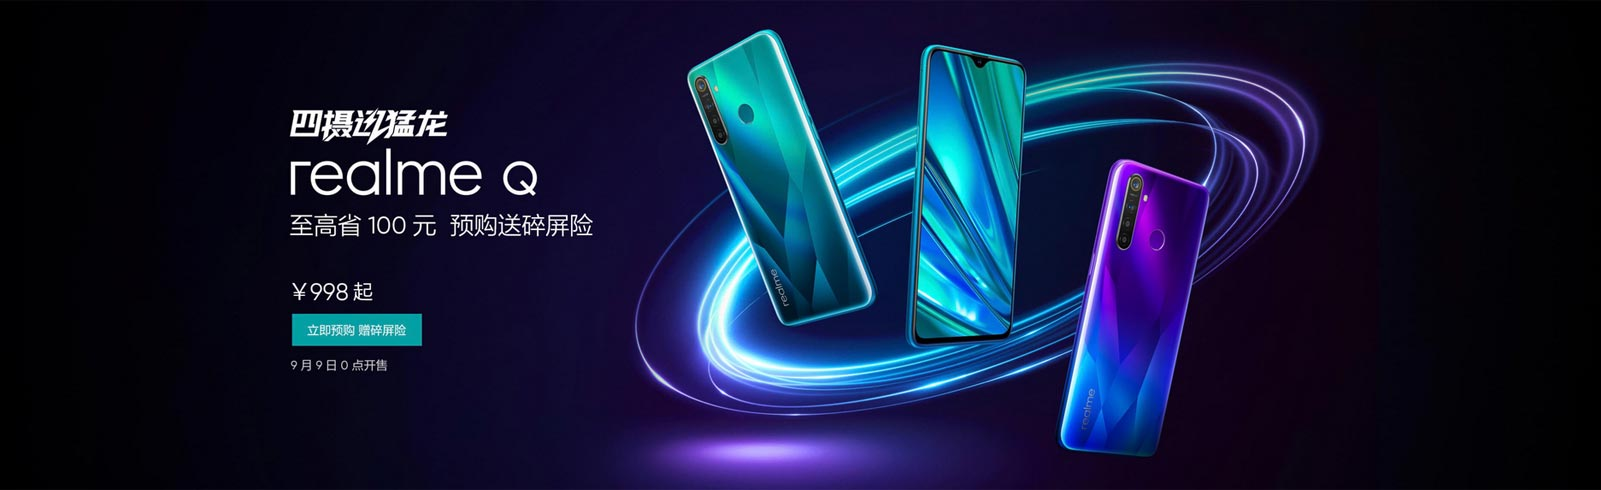 Realme Q is official, is identical to Realme 5 Pro